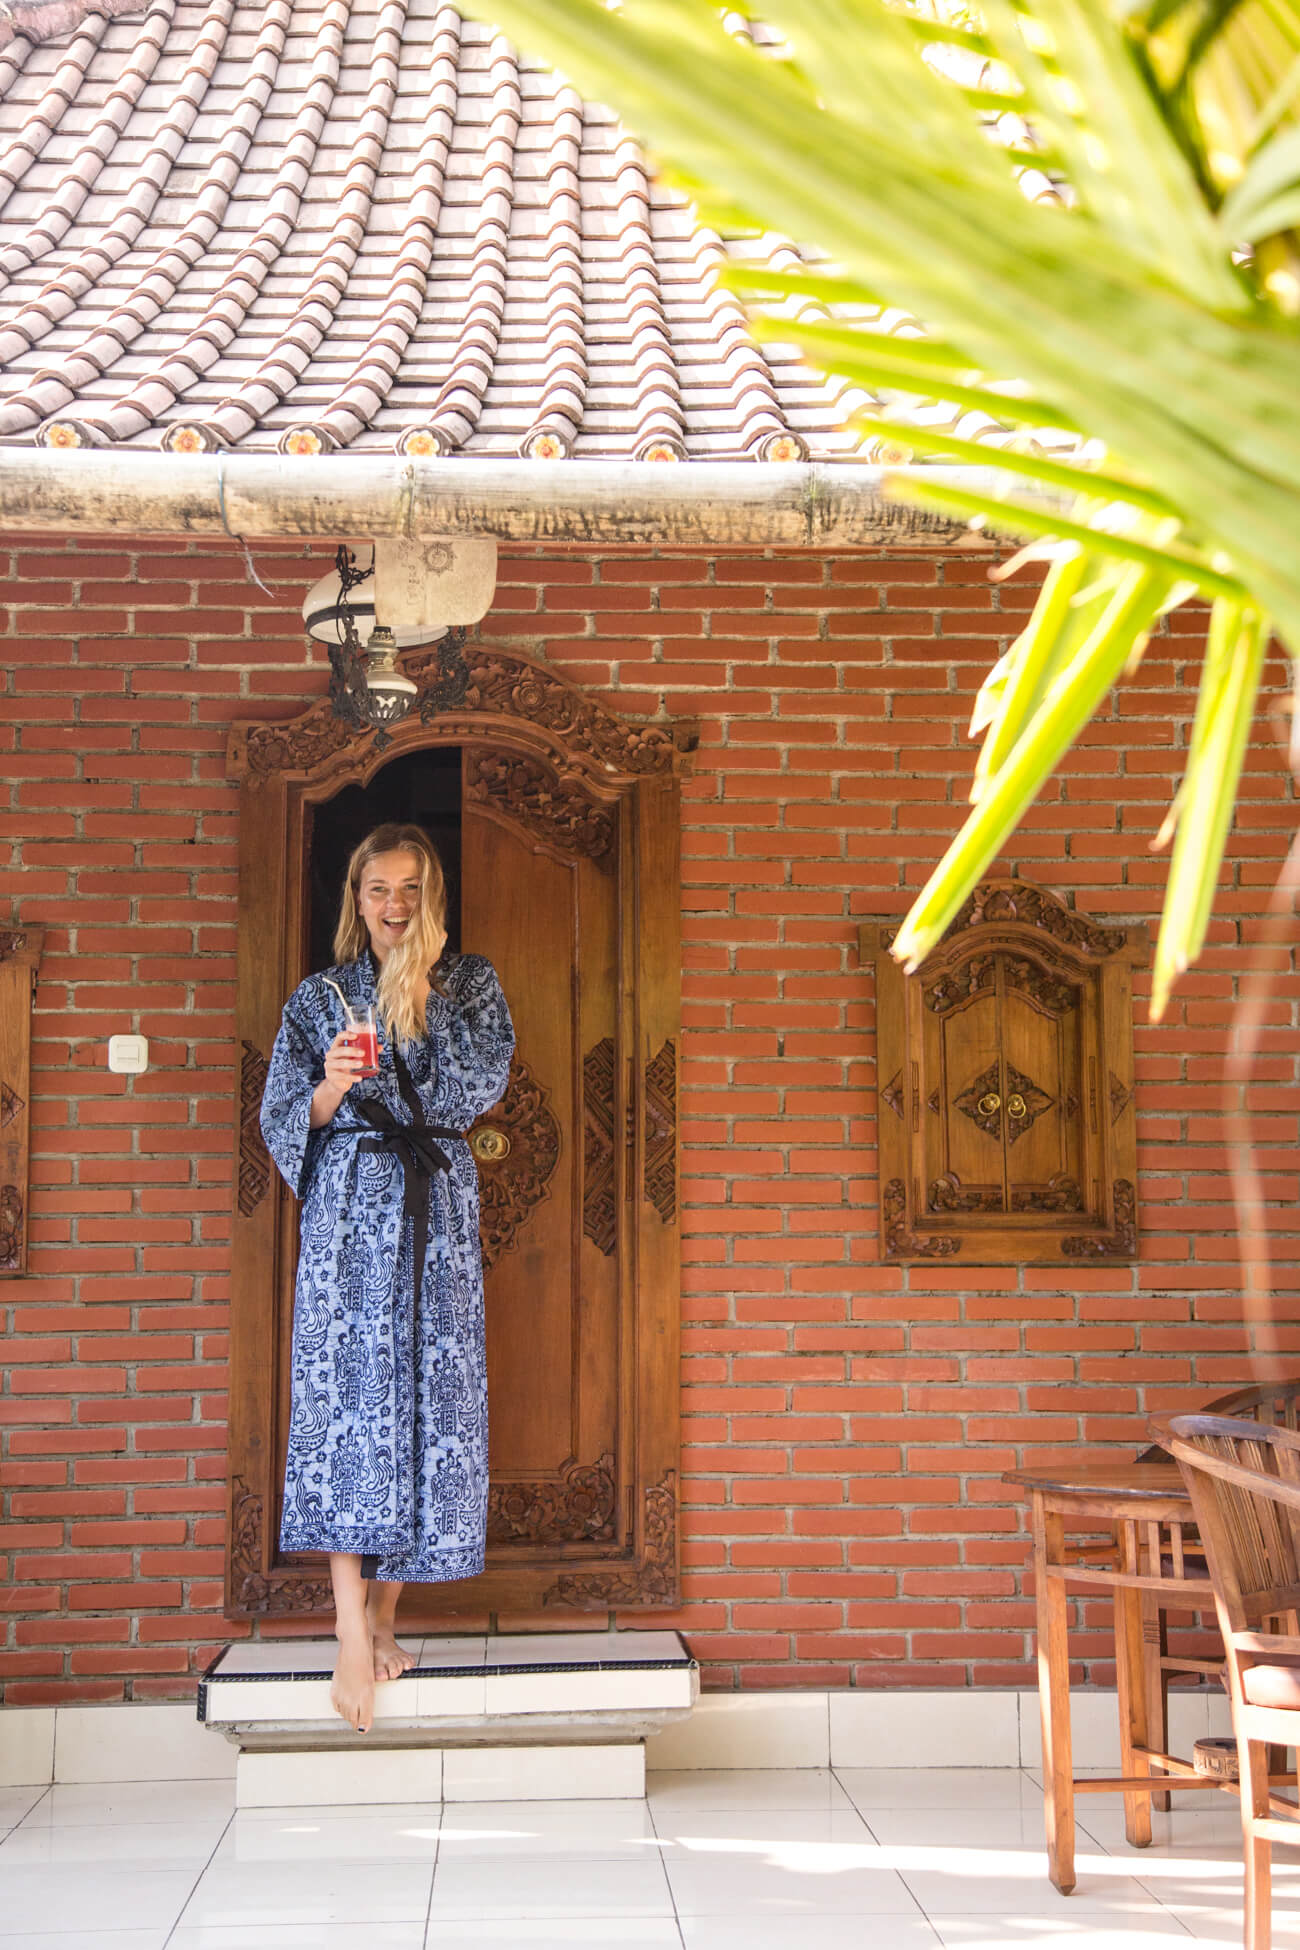 Exploring Ubud, Bali Indonesia | Where's Mollie? A Travel and Adventure Lifestyle Blog